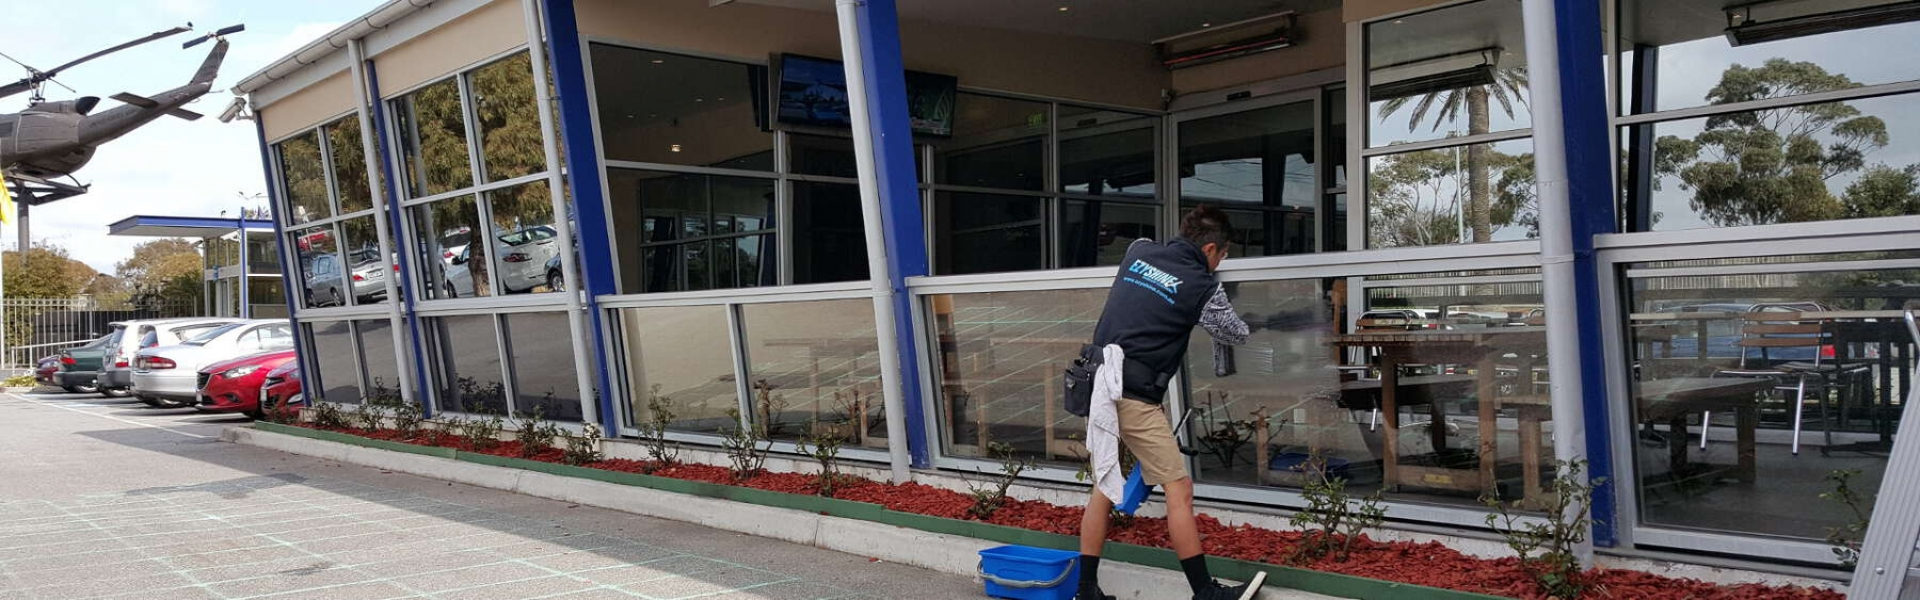 Dandenong RSL commercial window cleaning